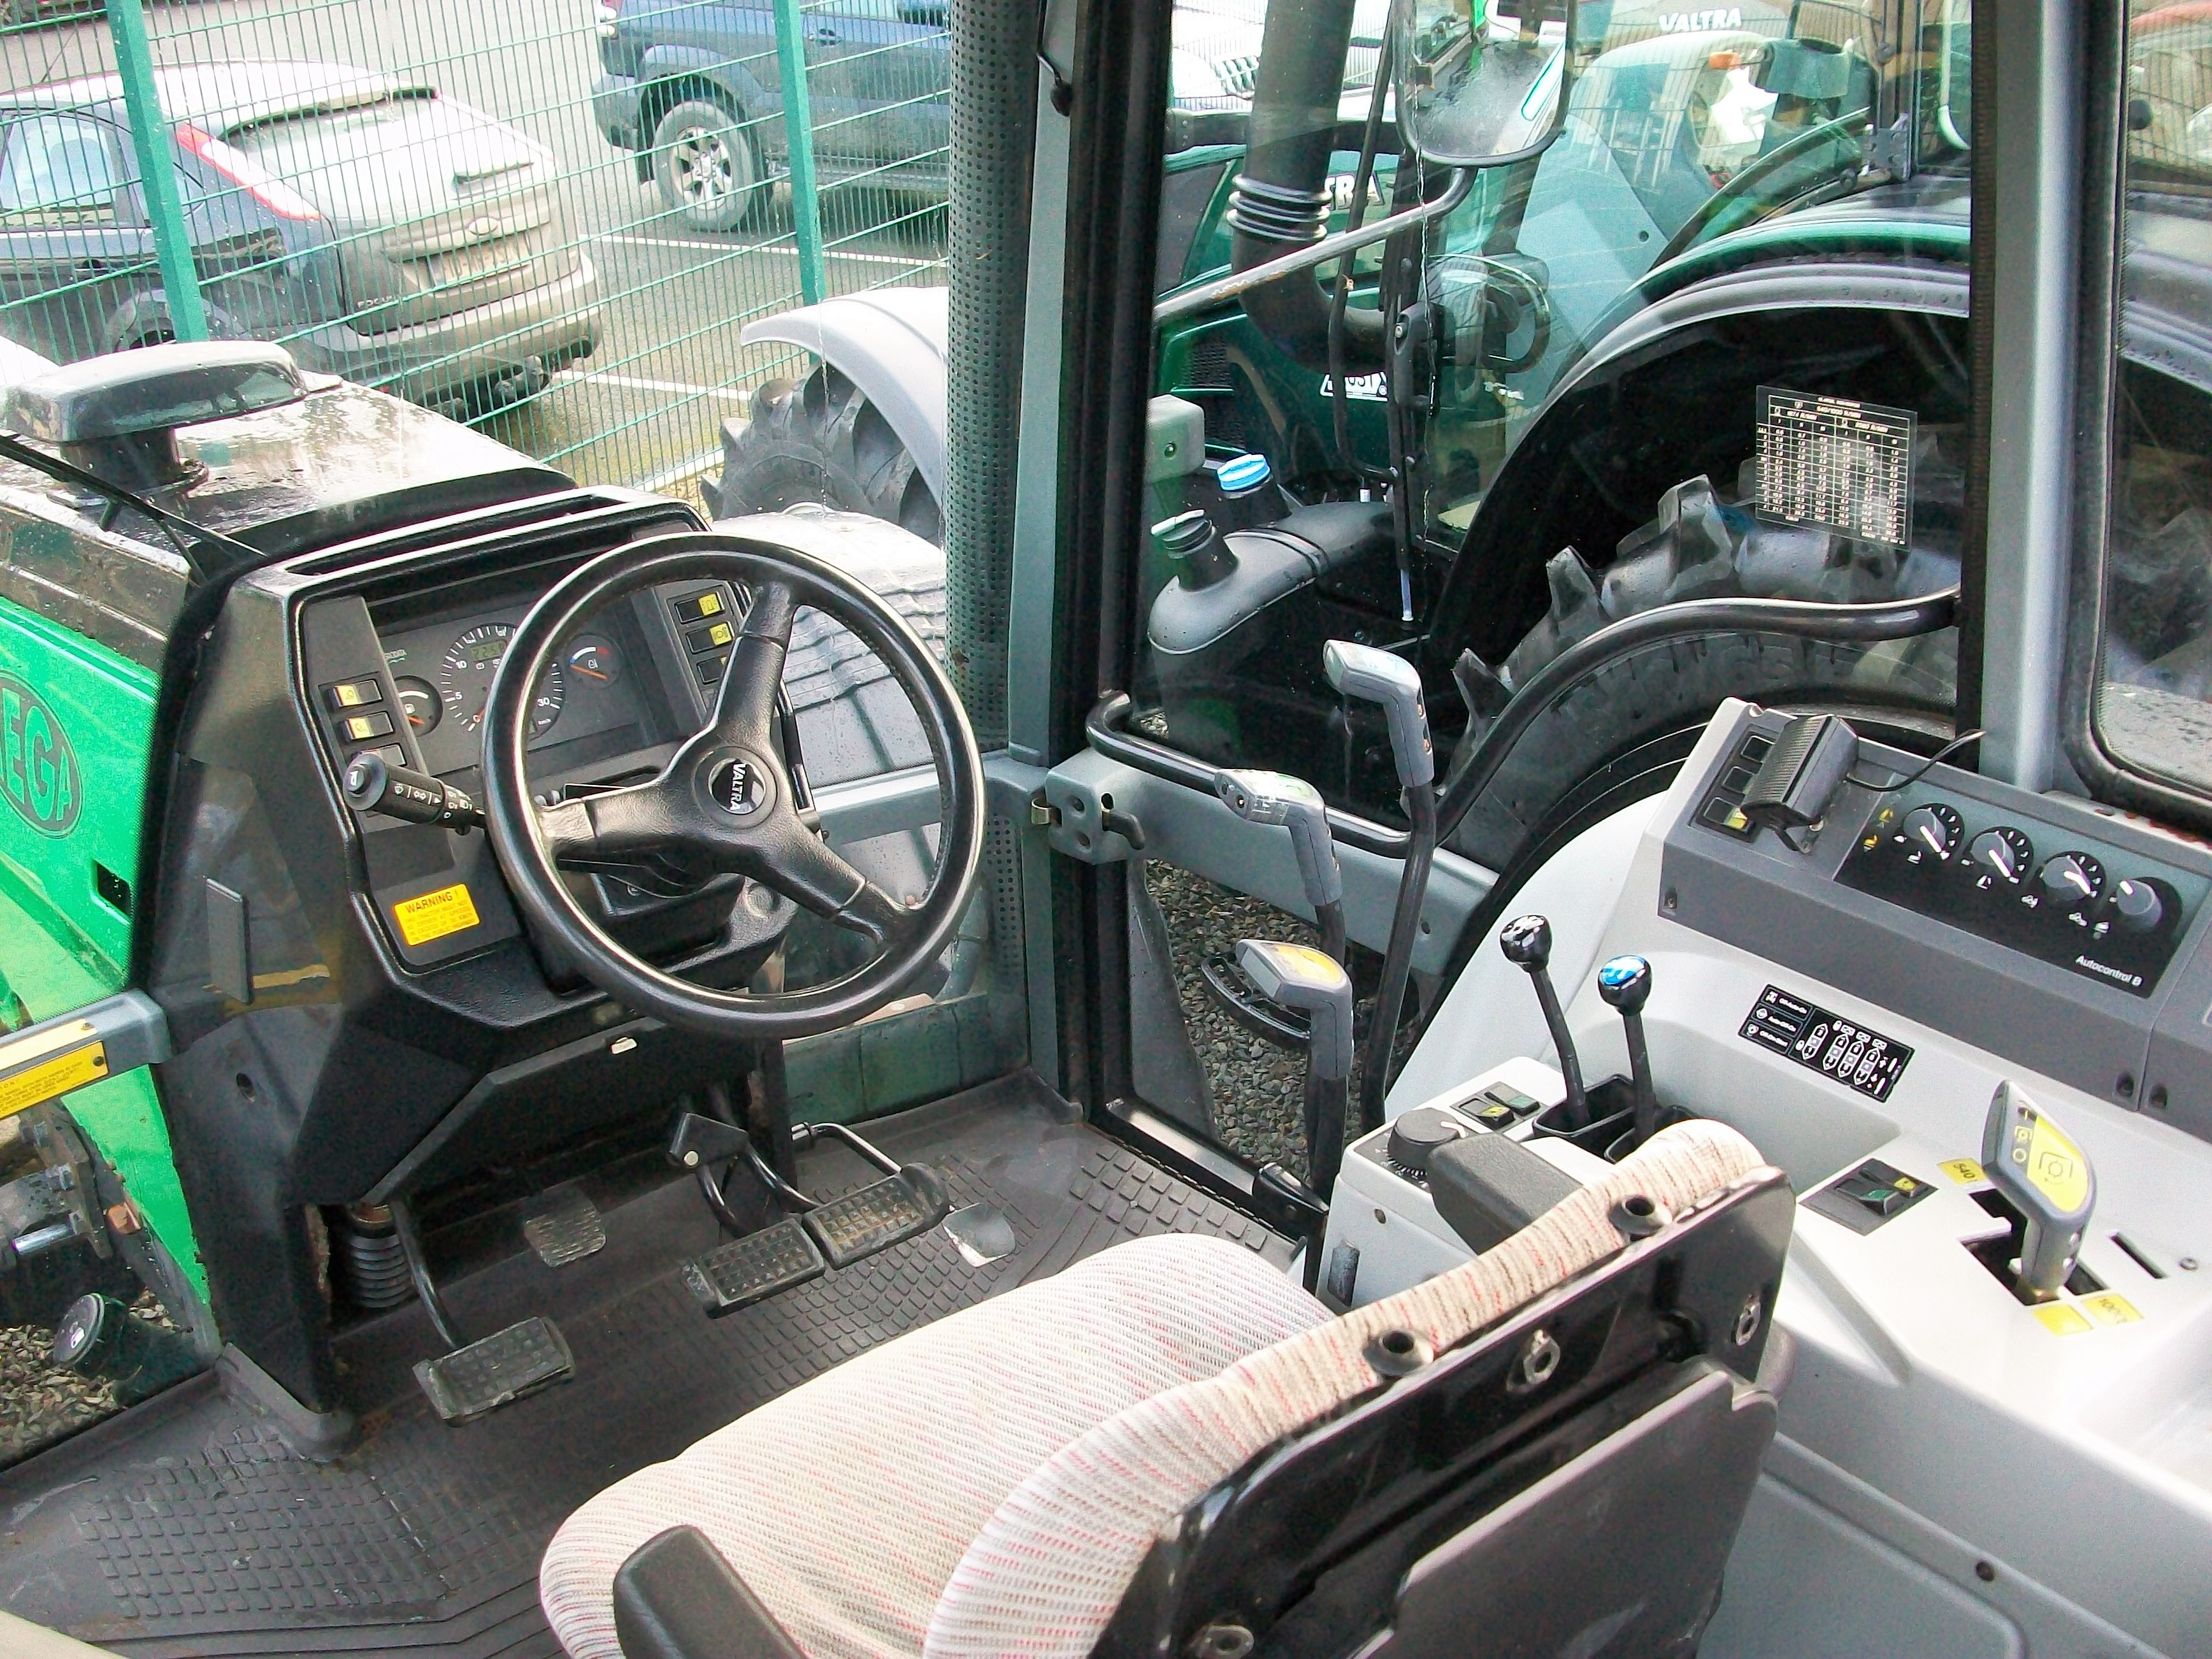 Buyer's guide: What you should look out for in a used Valtra (Valmet